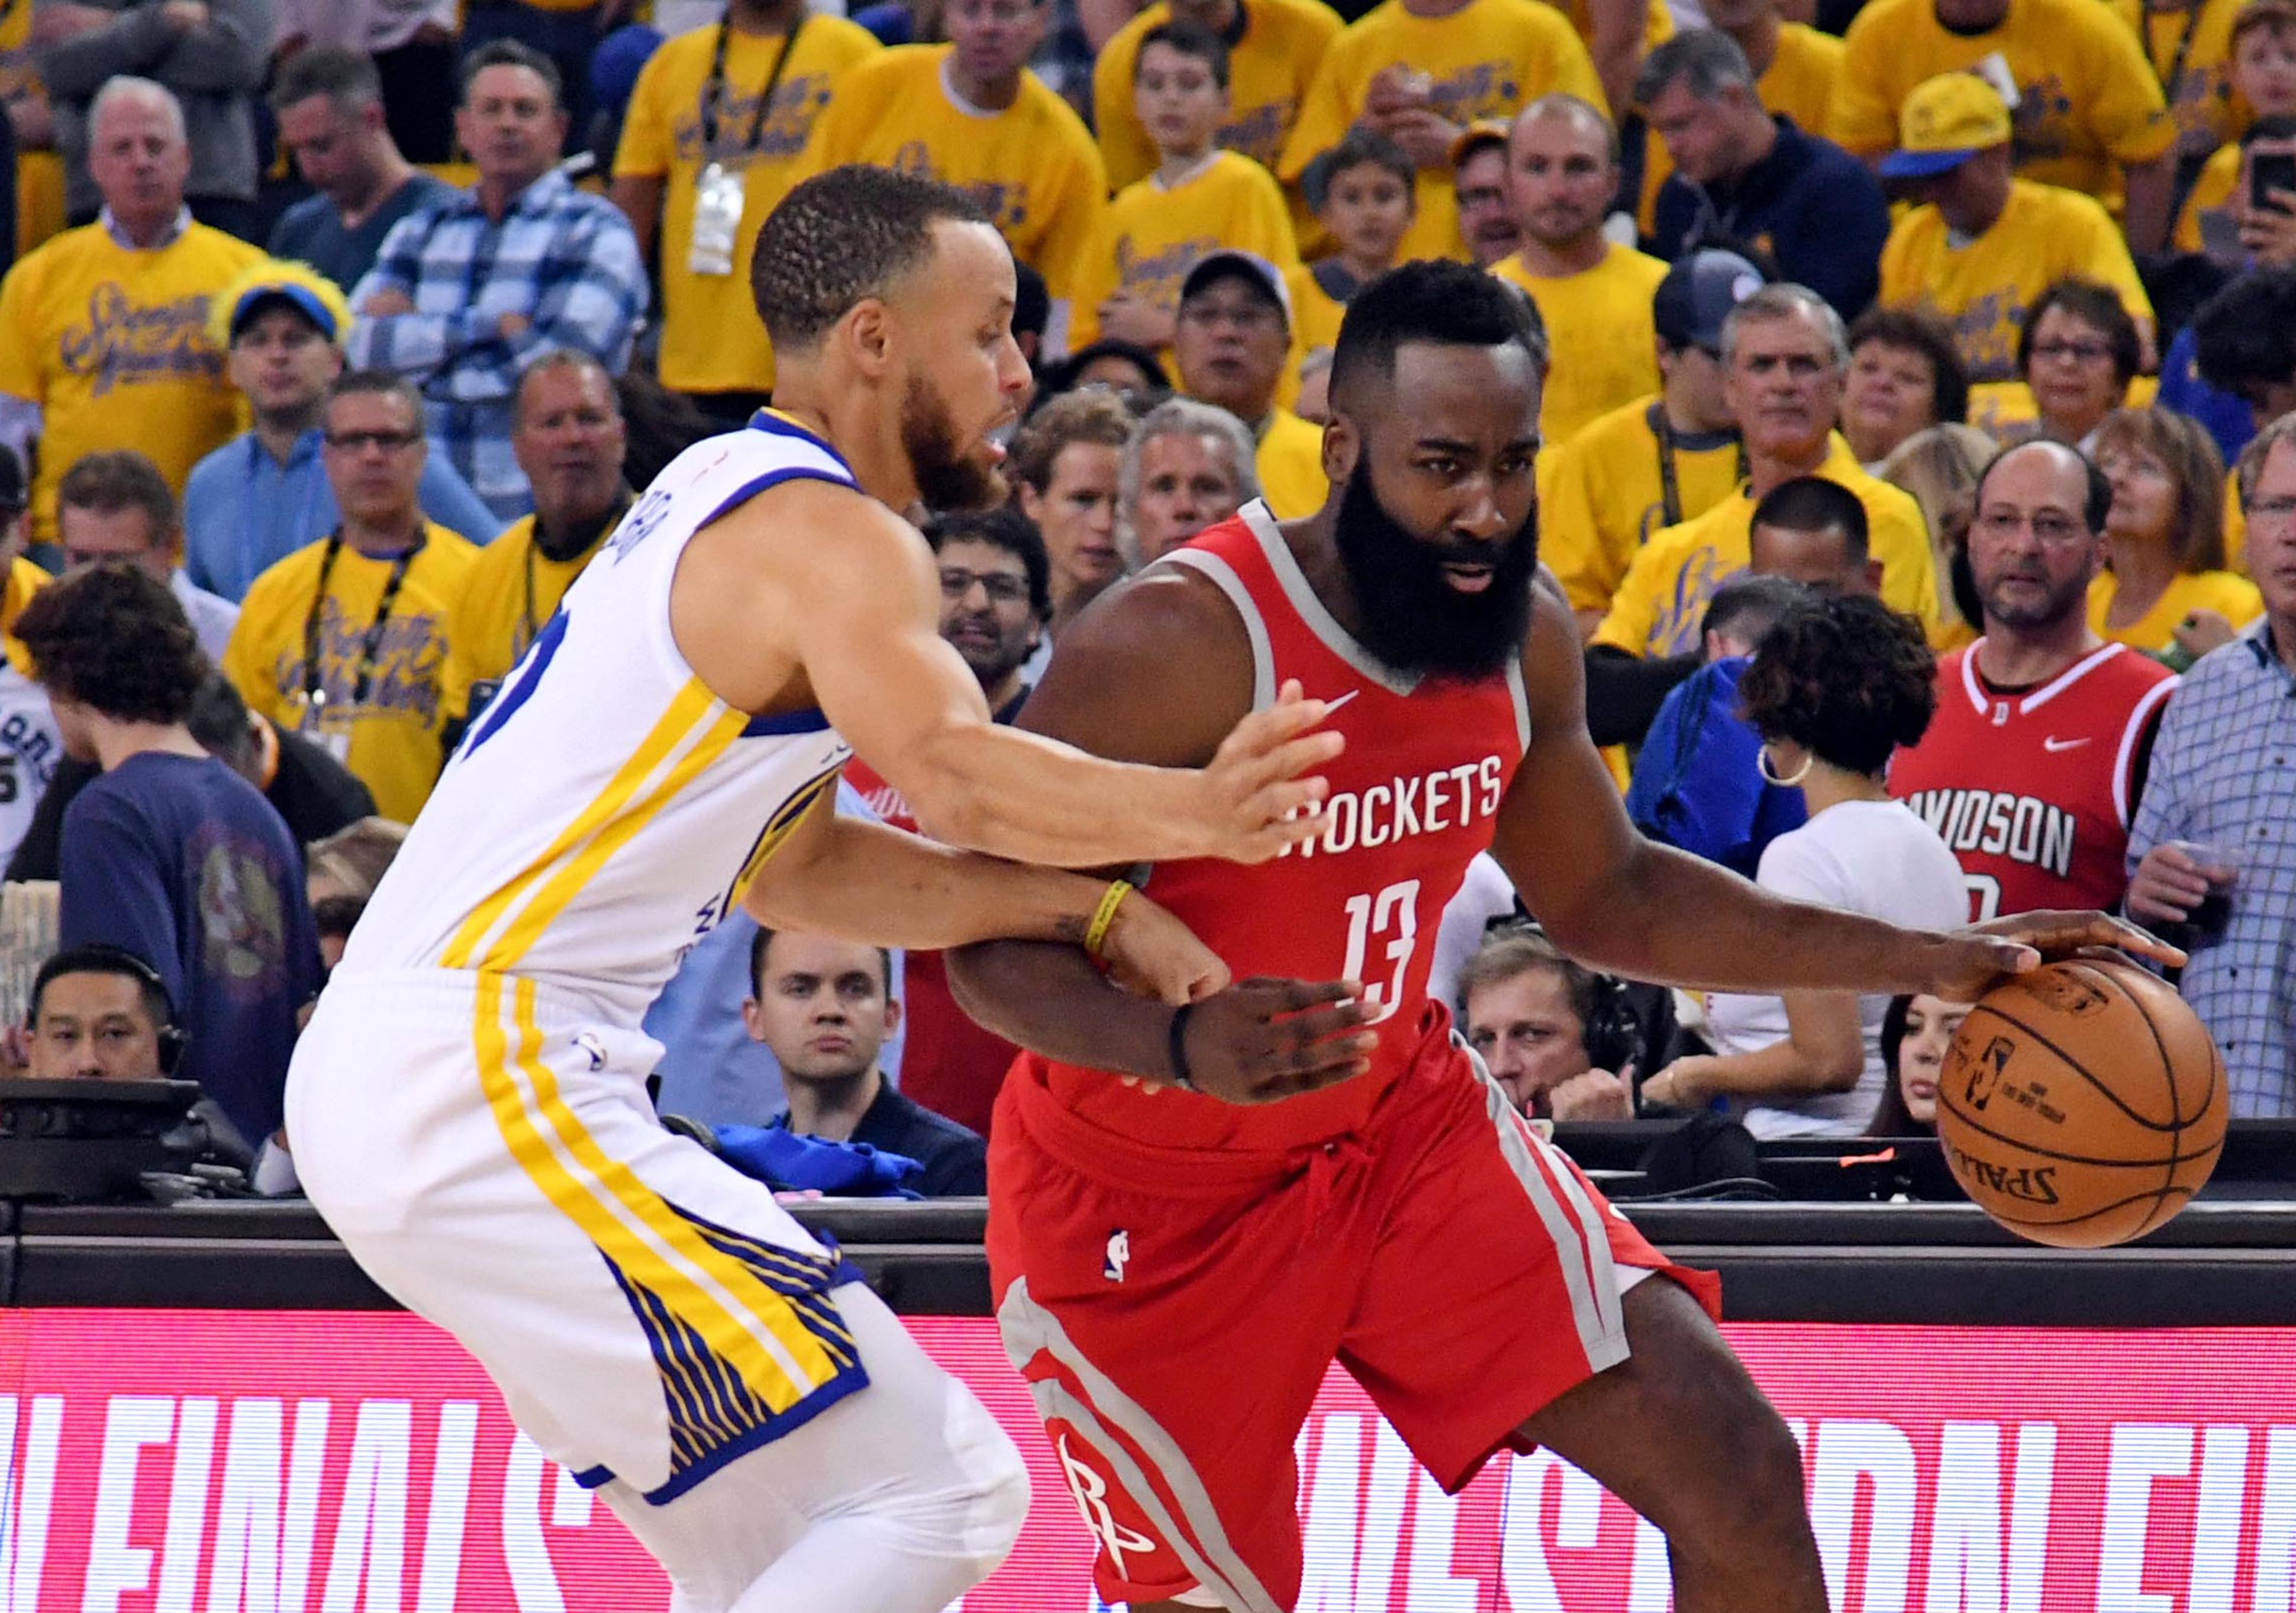 game 4 of the western conference finals Summary and statistics for the 2018 nba western conference finals - golden state warriors vs houston rockets.